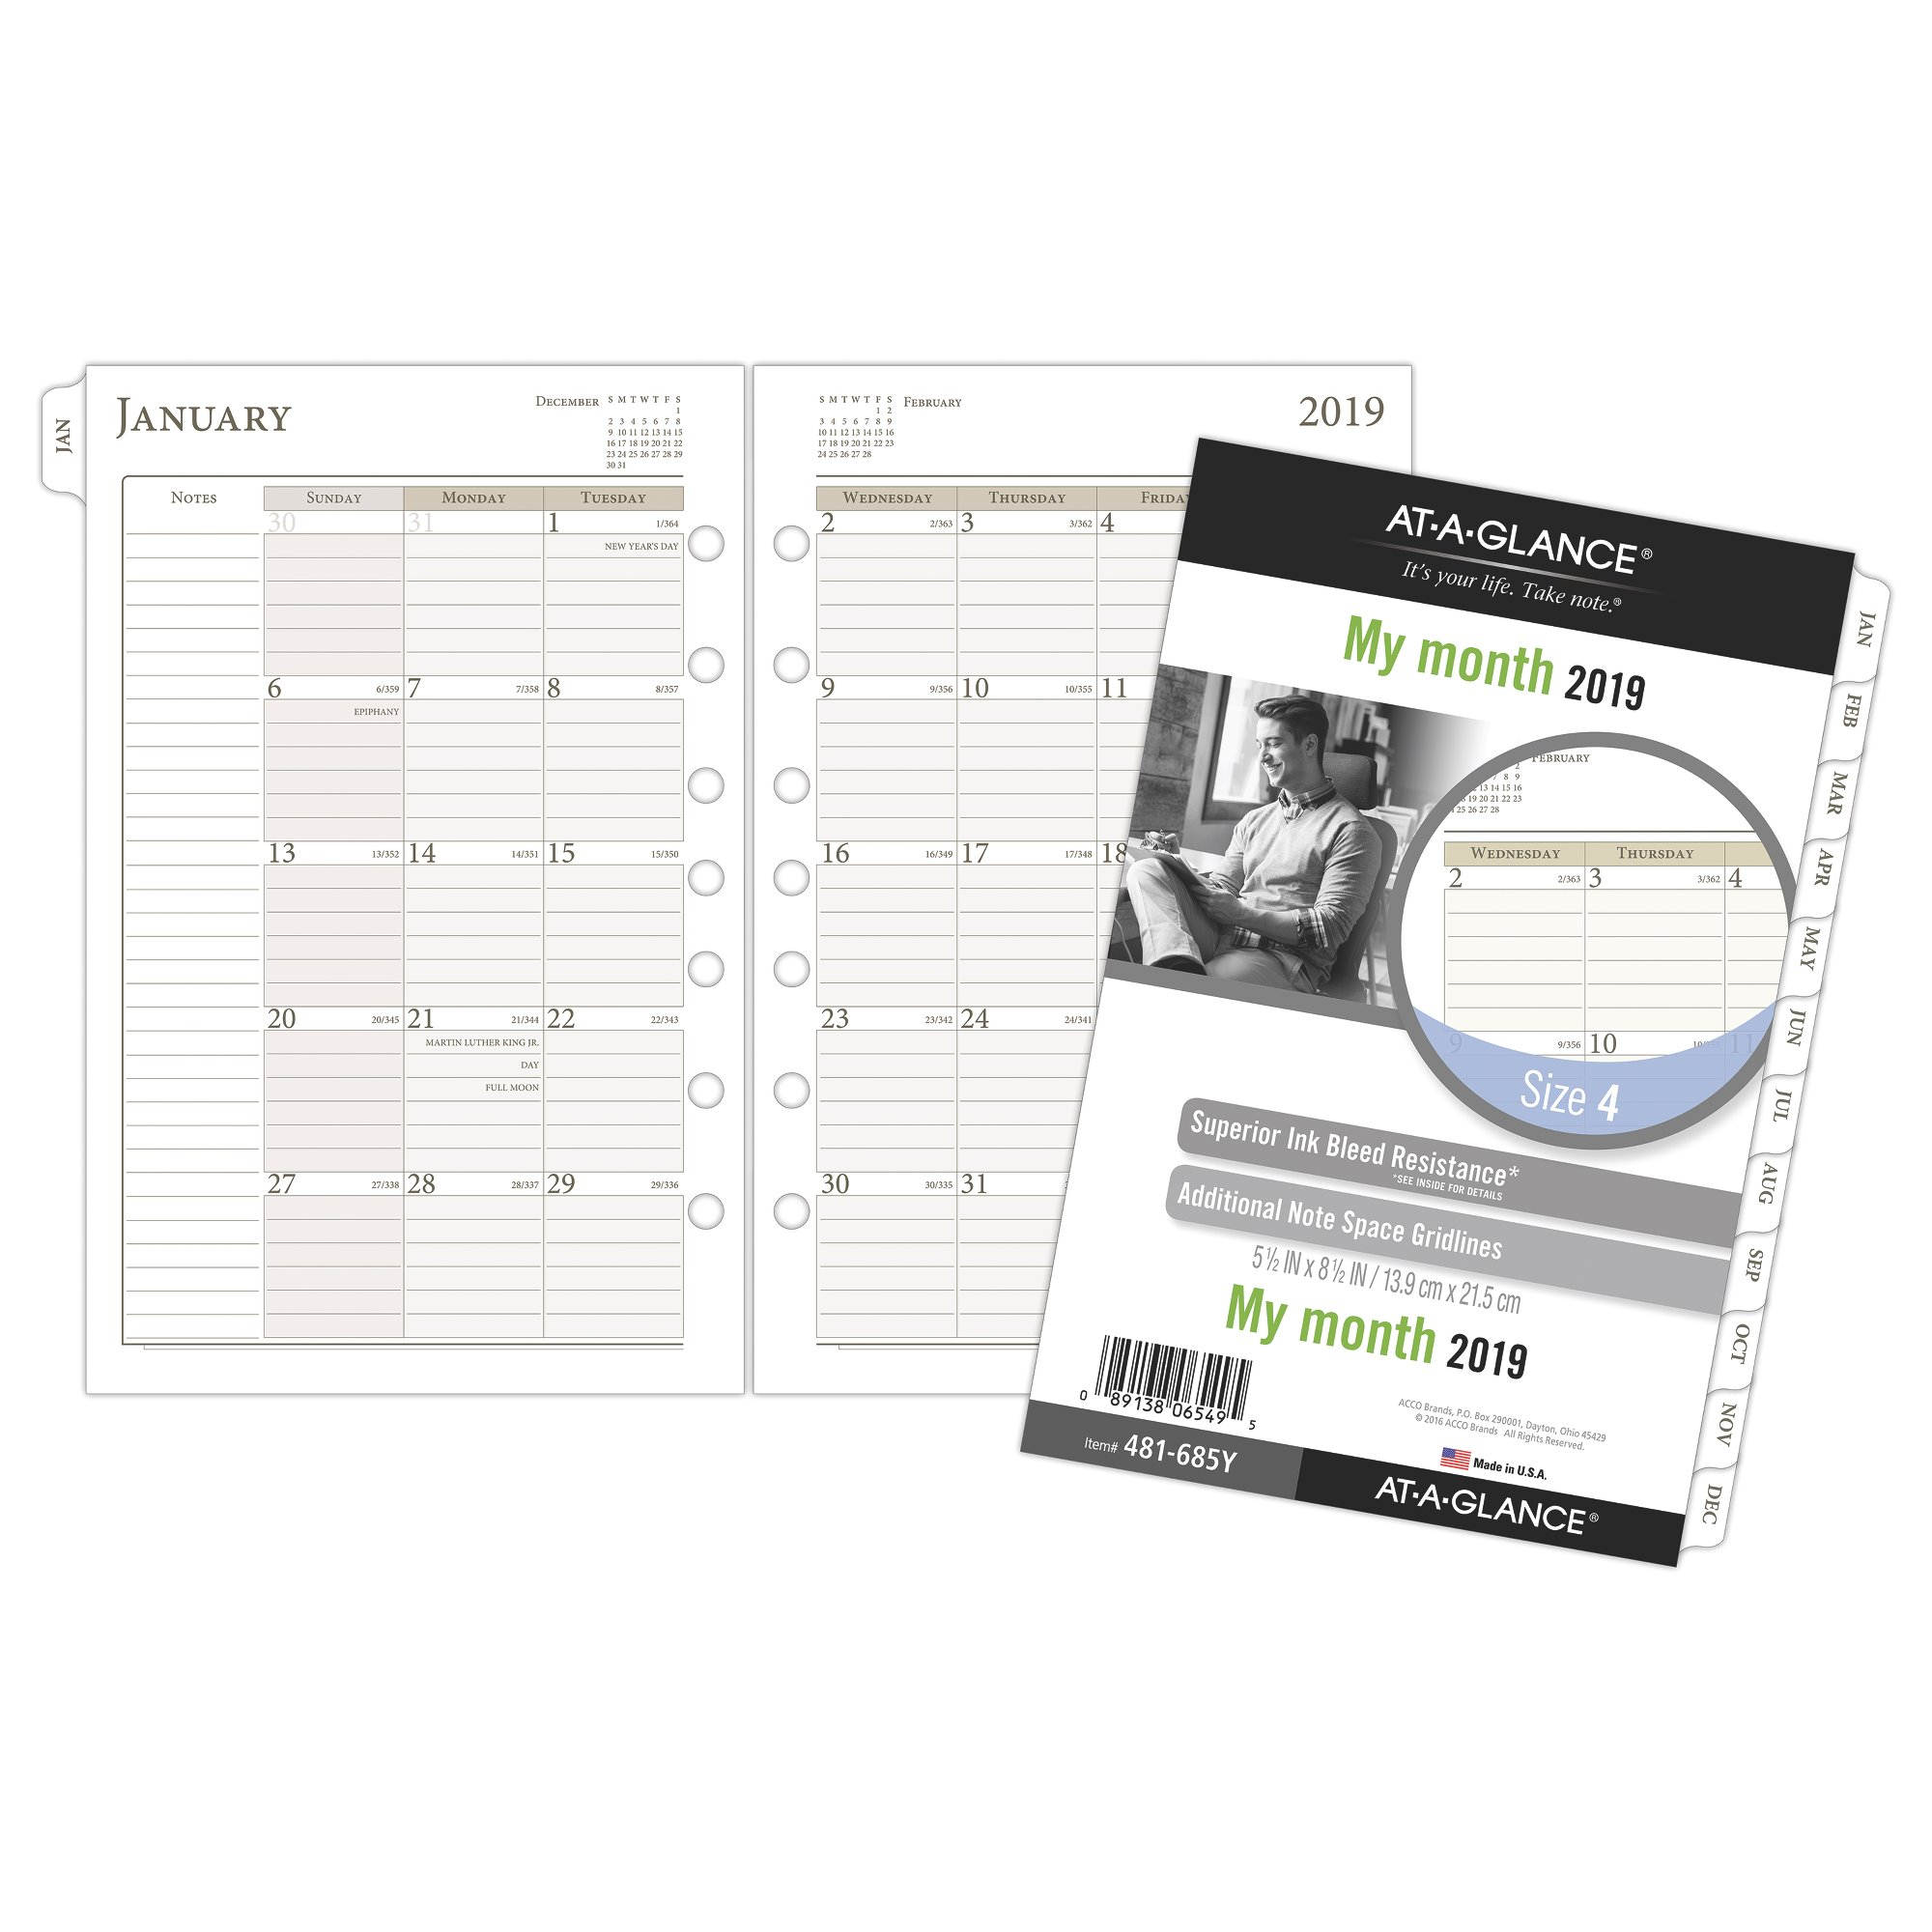 At-A-Glance Day Runner Monthly Planner Refill Size 4 Planner & Appointment by AT-A-GLANCE Day Runner